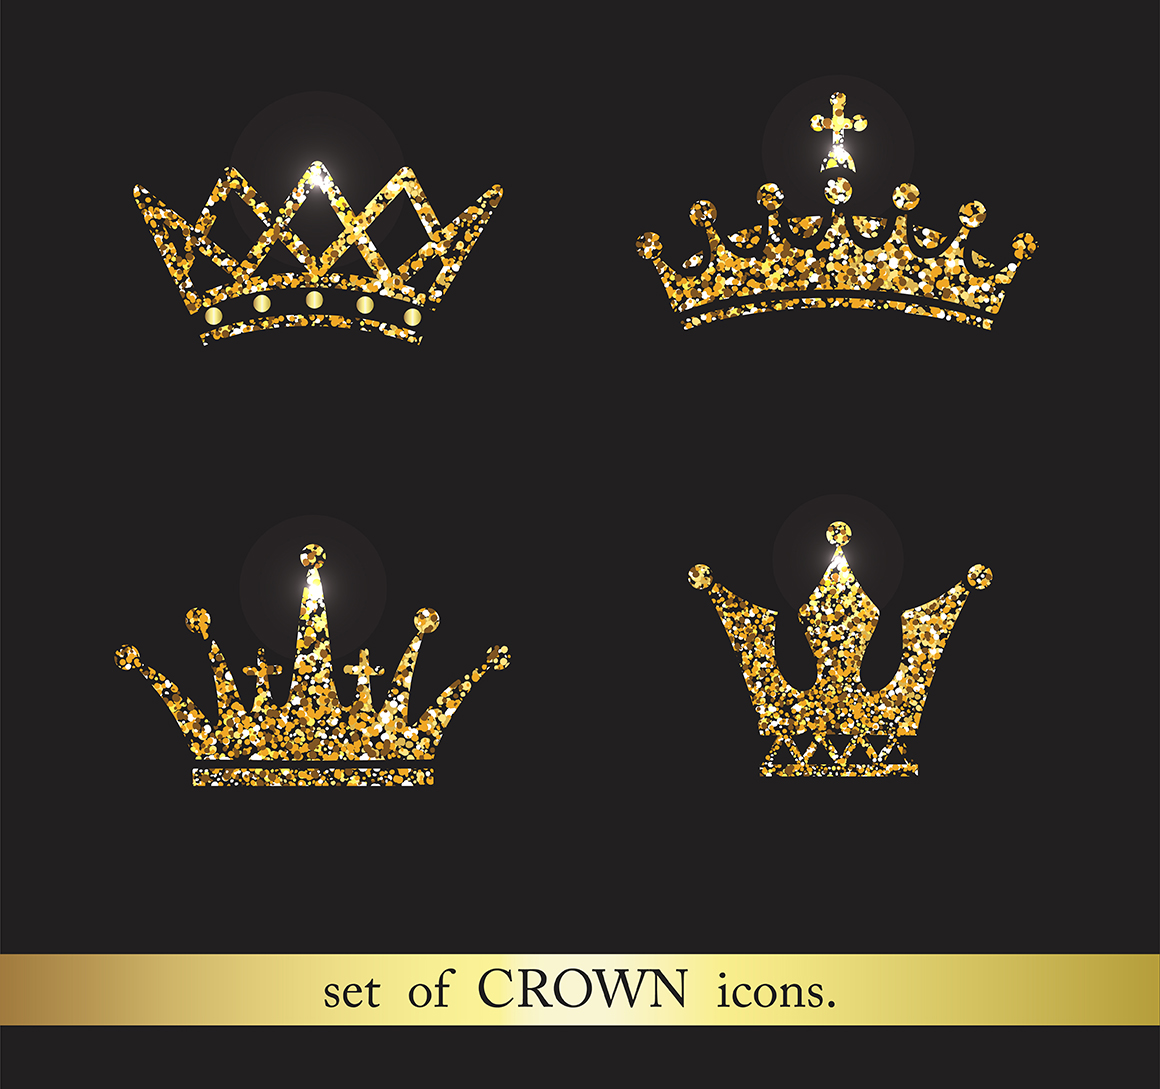 set of gold and silver crown icons b design bundles